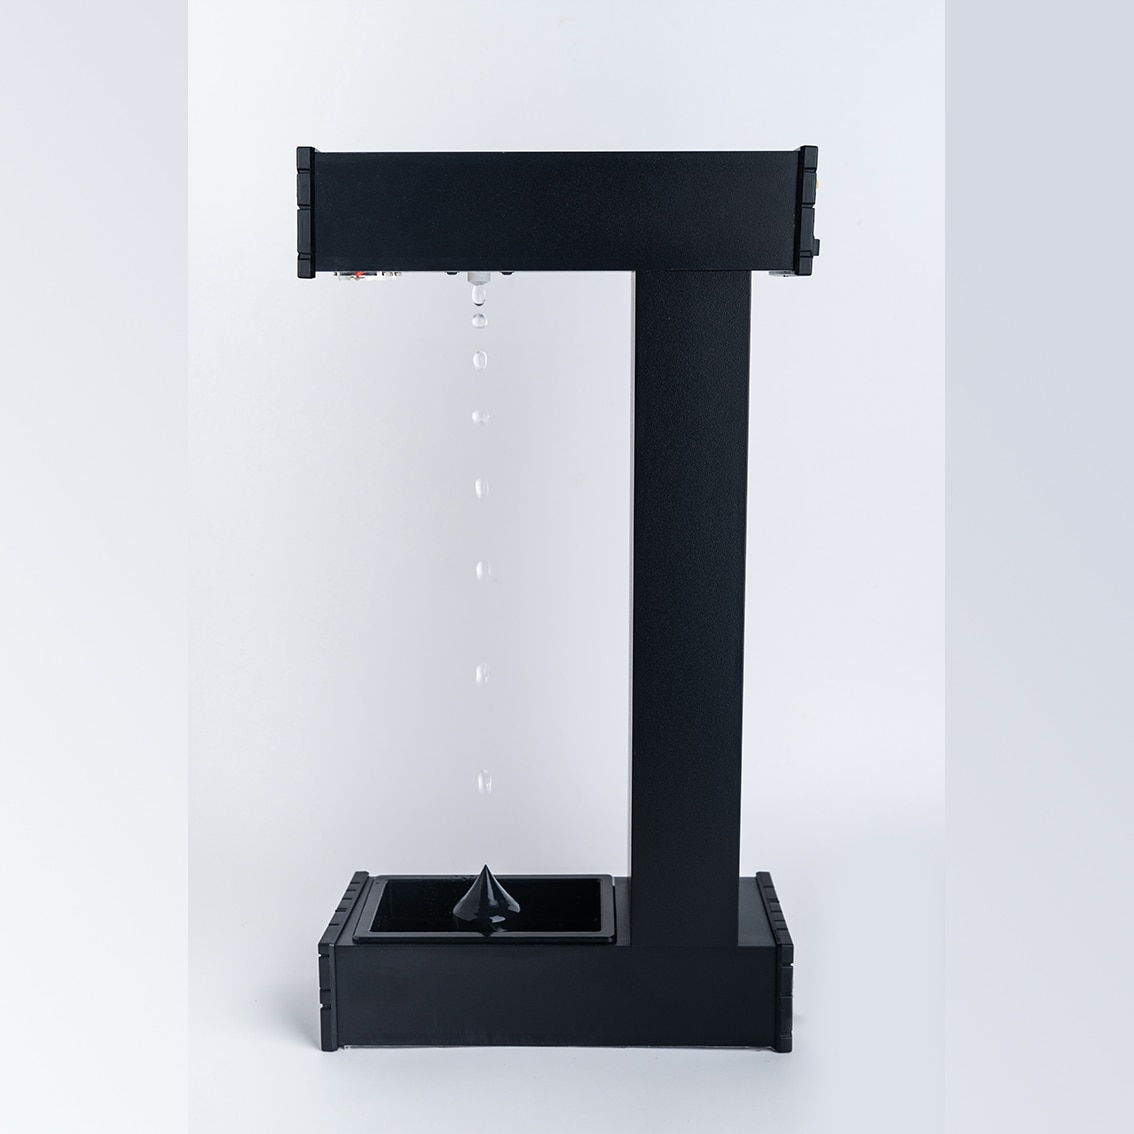 Anti-Gravity Time Hourglass Anti-Gravity Suspended Water Drops Backward Office Decoration Black Technology Creative Birthday Gif